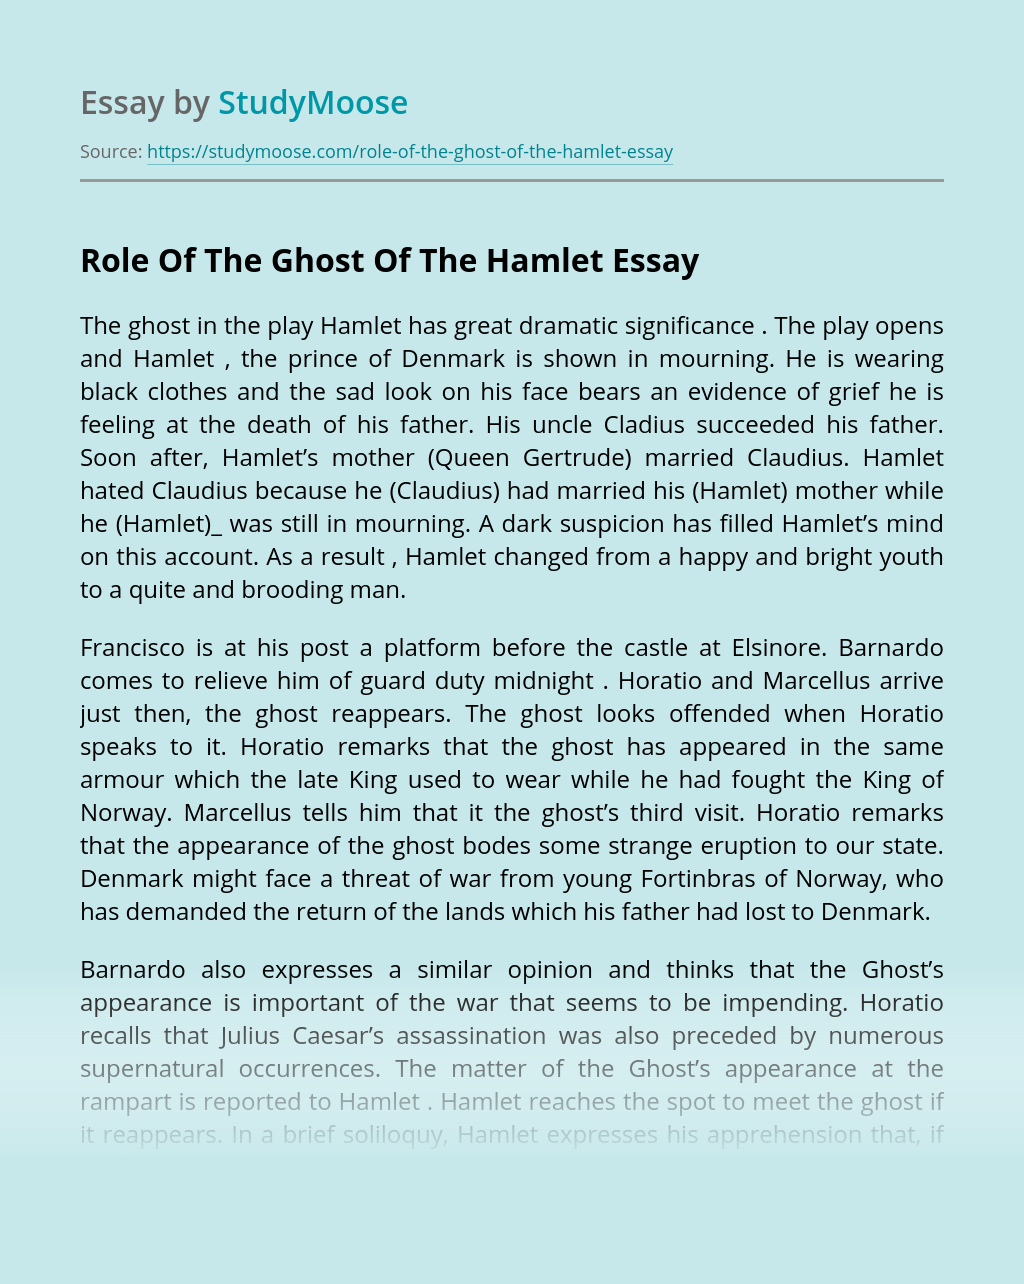 Role Of The Ghost Of The Hamlet